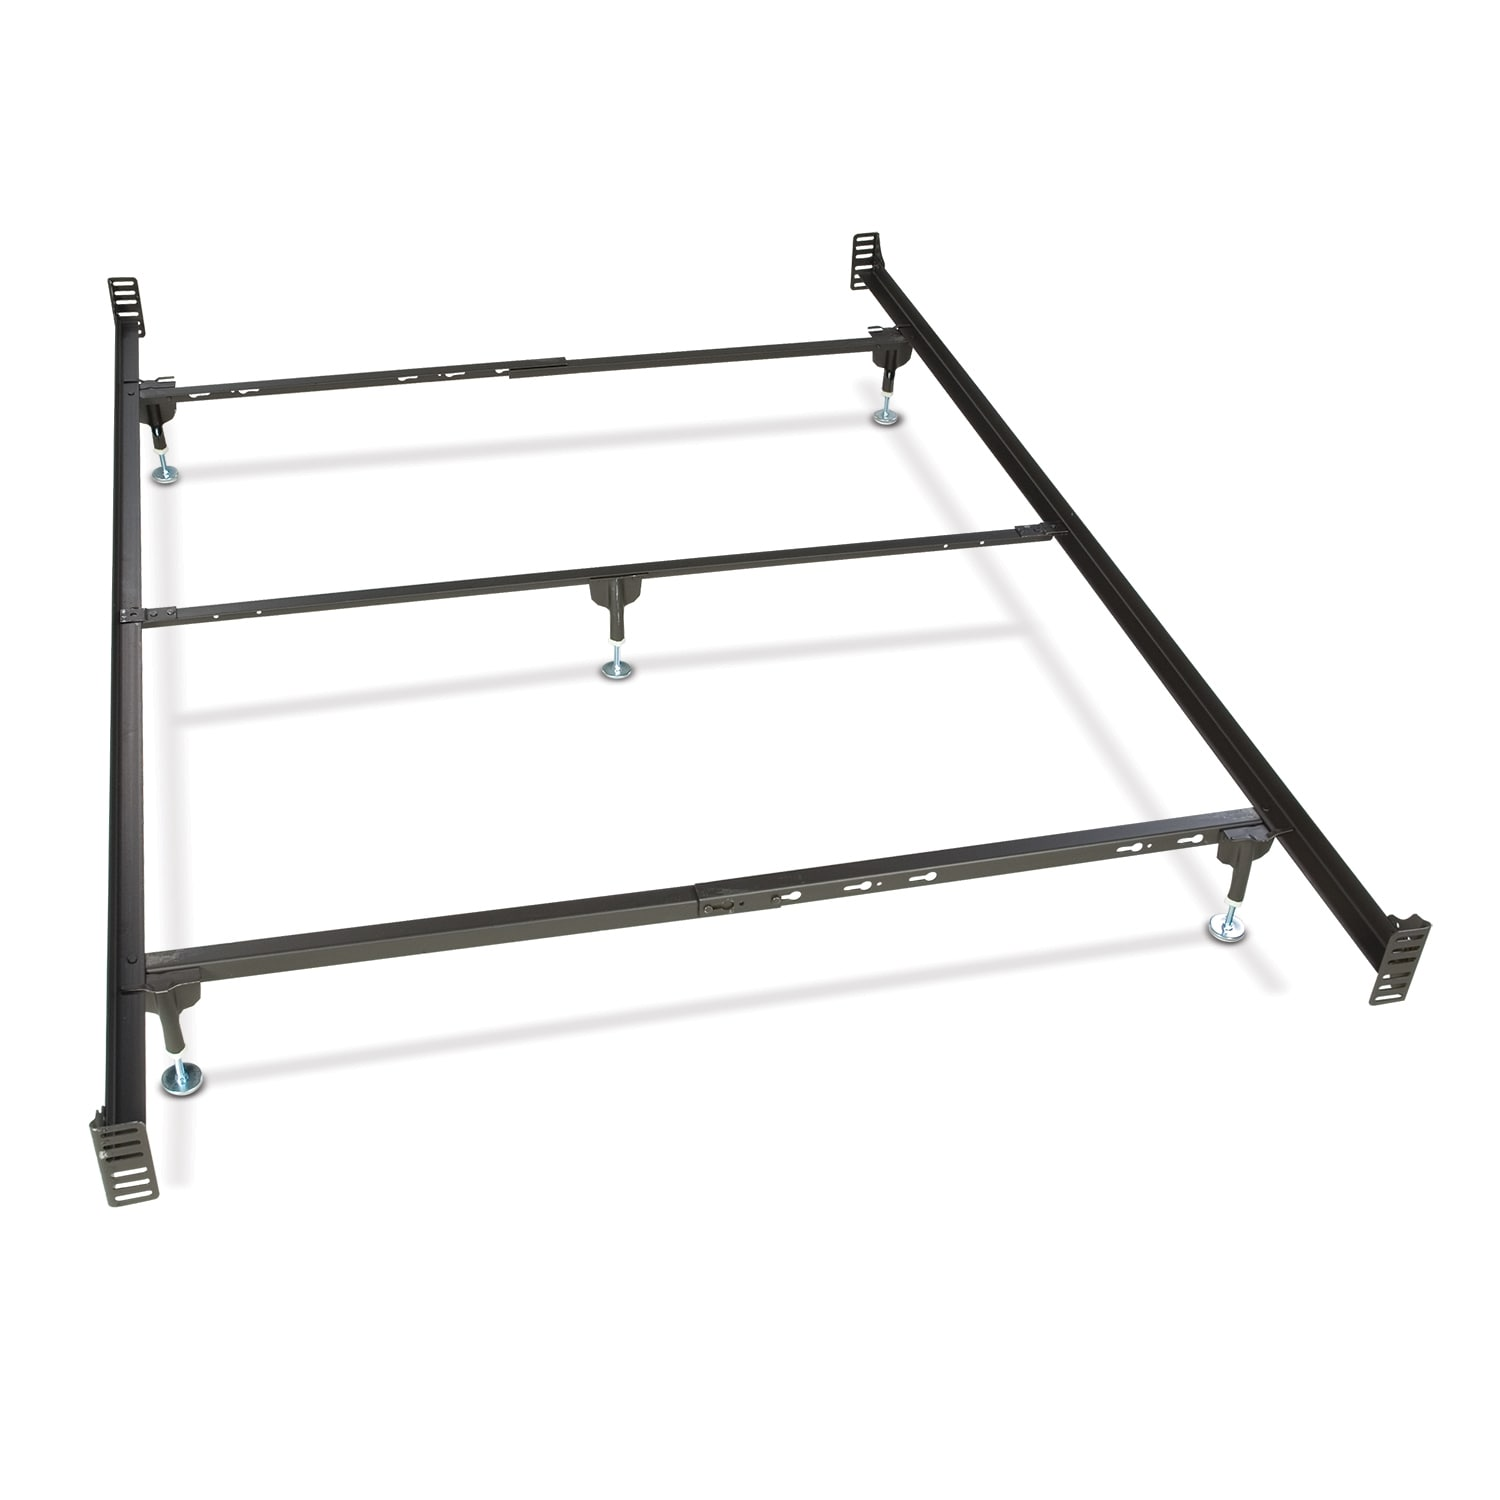 bb34 queen bed frame - Queen Bed And Frame